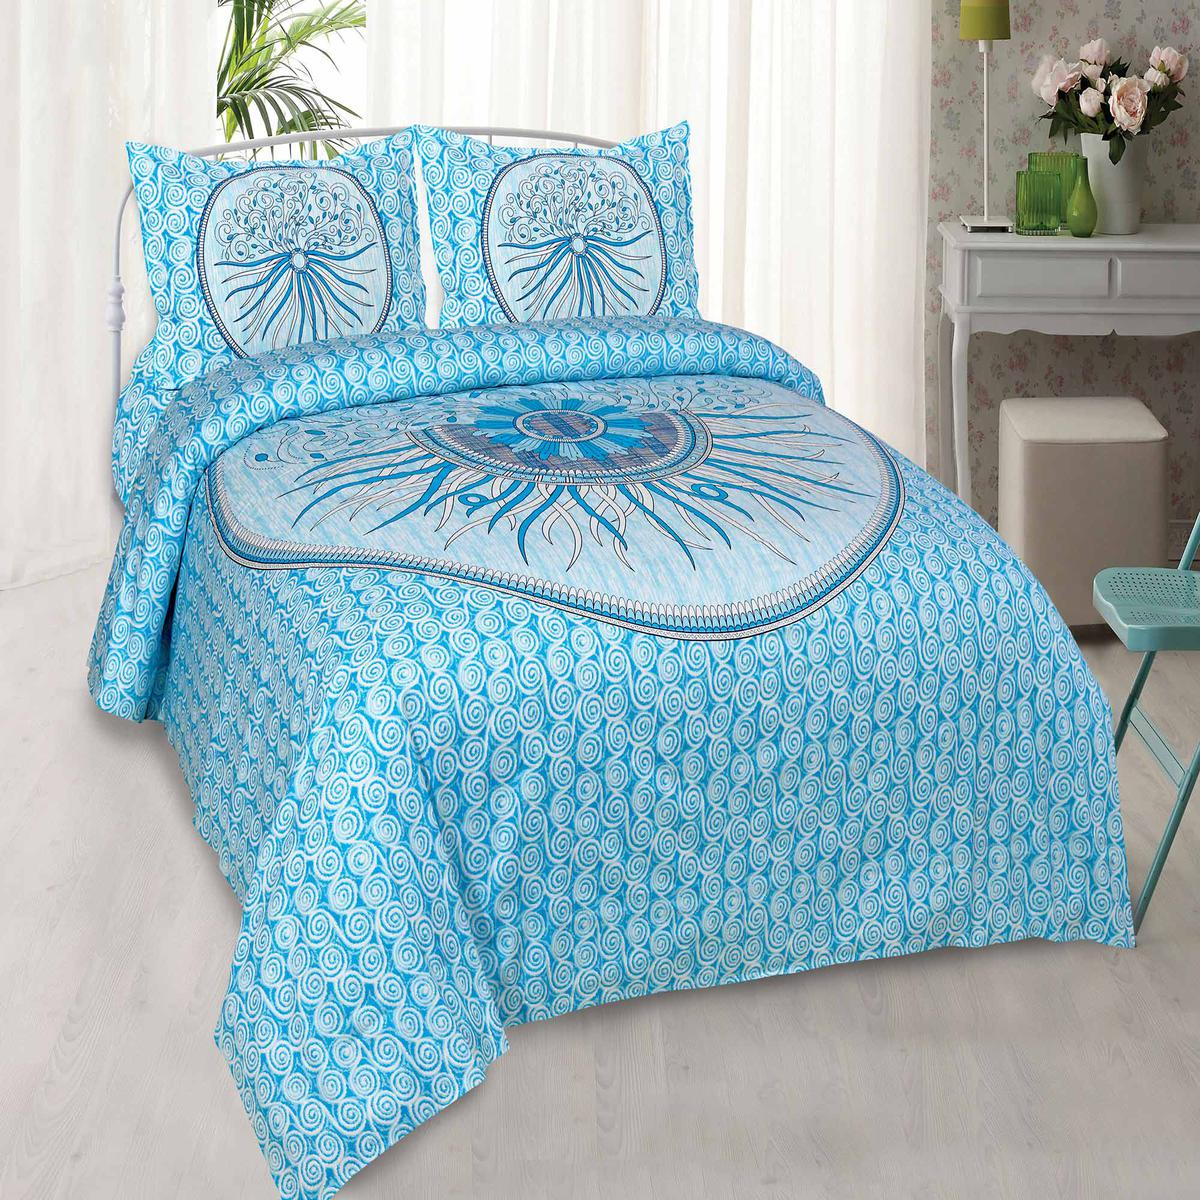 Jaipur Fabric Radiant Checks Sky Blue Hand Art Cotton King Size Bedsheet with 2 Pillow Covers